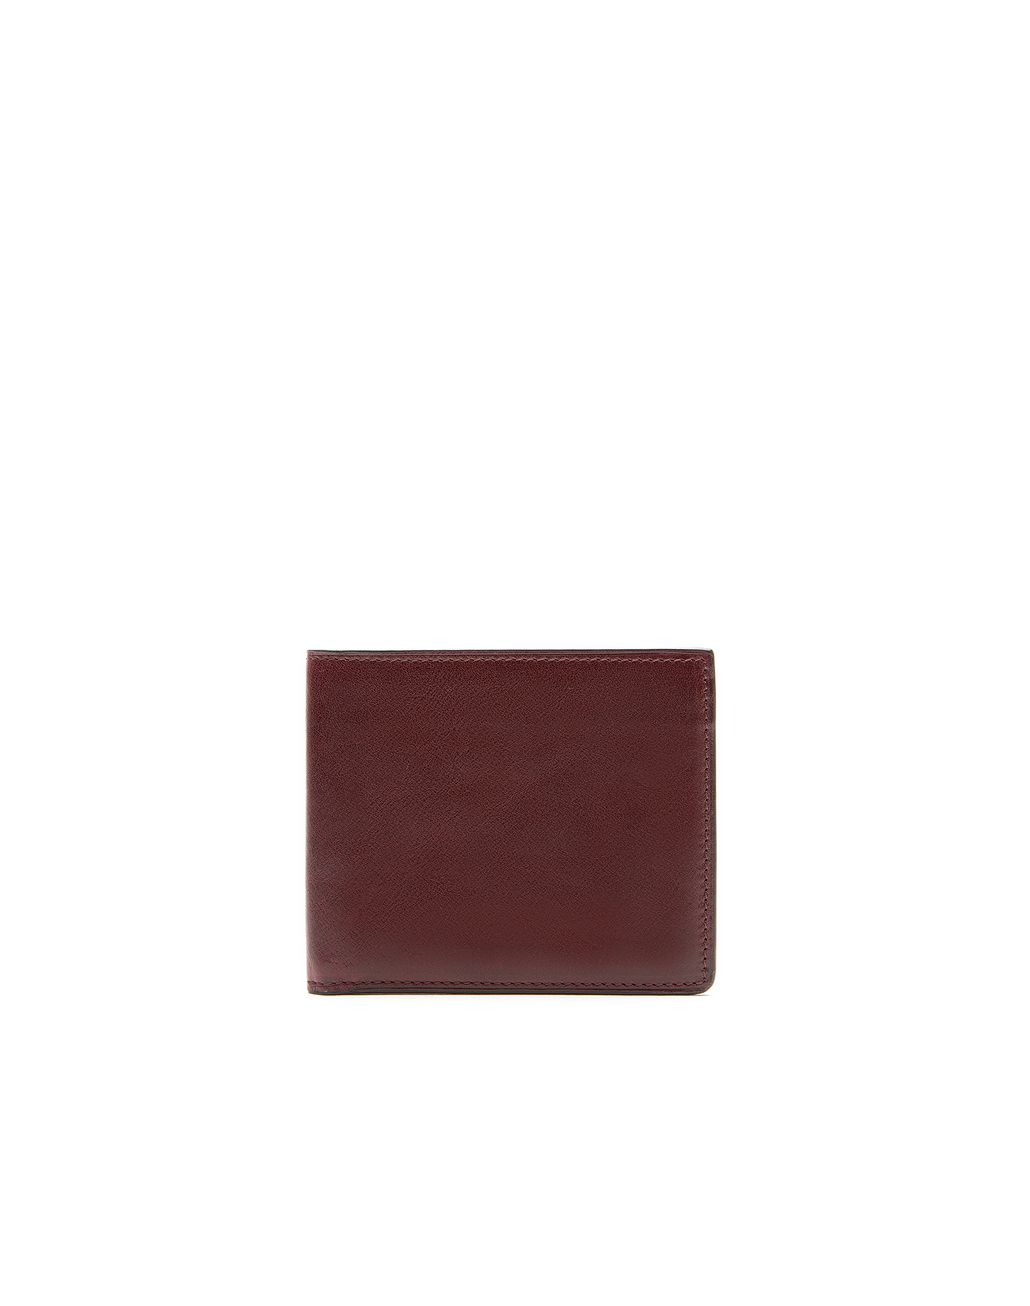 BRIONI Oxblood Slim Wallet Leather Goods U f